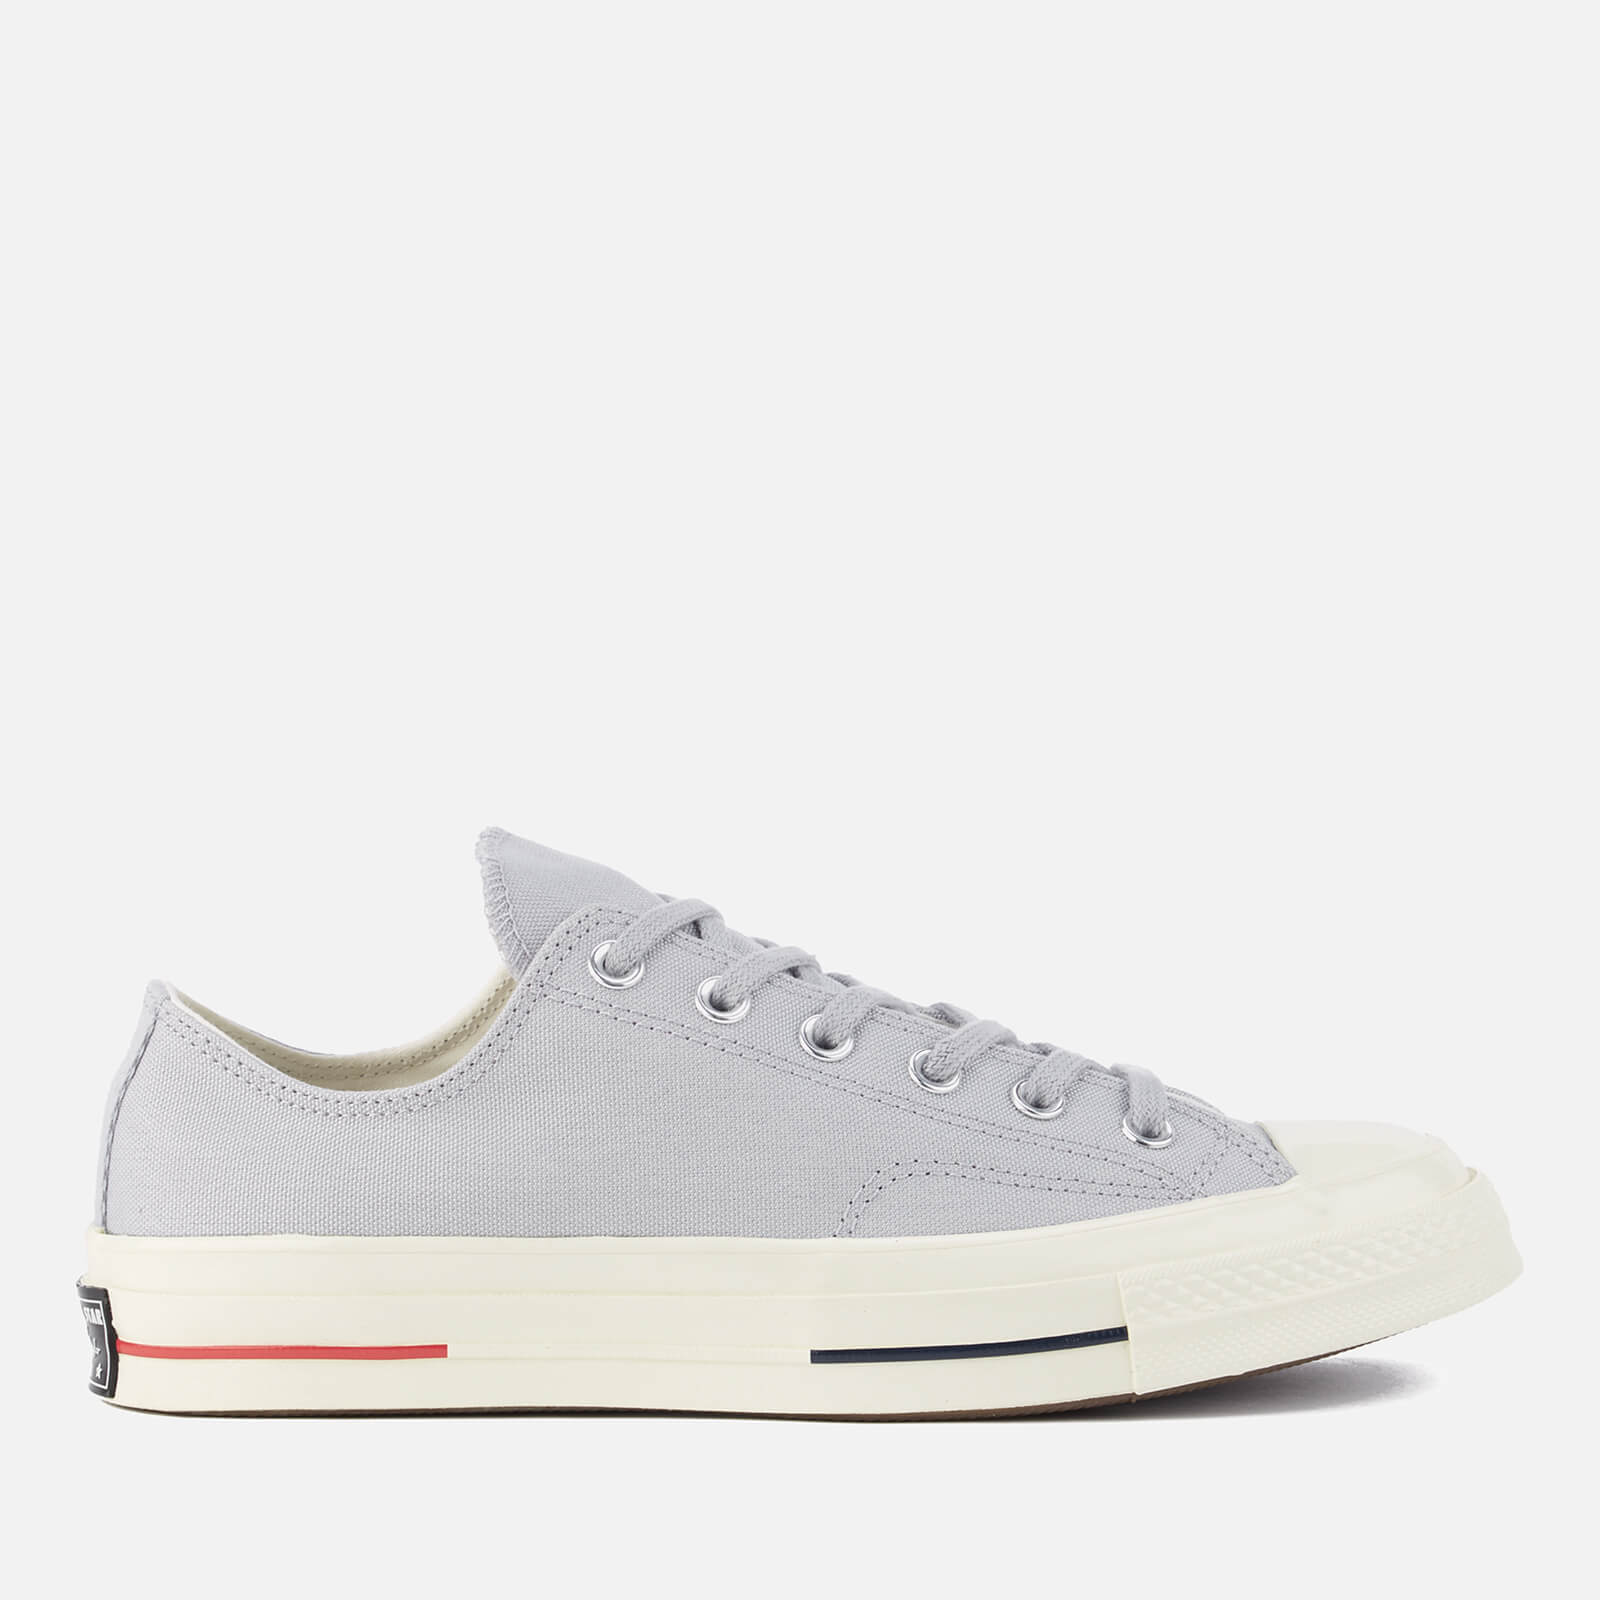 52923faaa609 Converse Men s Chuck Taylor All Star  70 Ox Trainers - Wolf Grey Navy Gym  Red - Free UK Delivery over £50